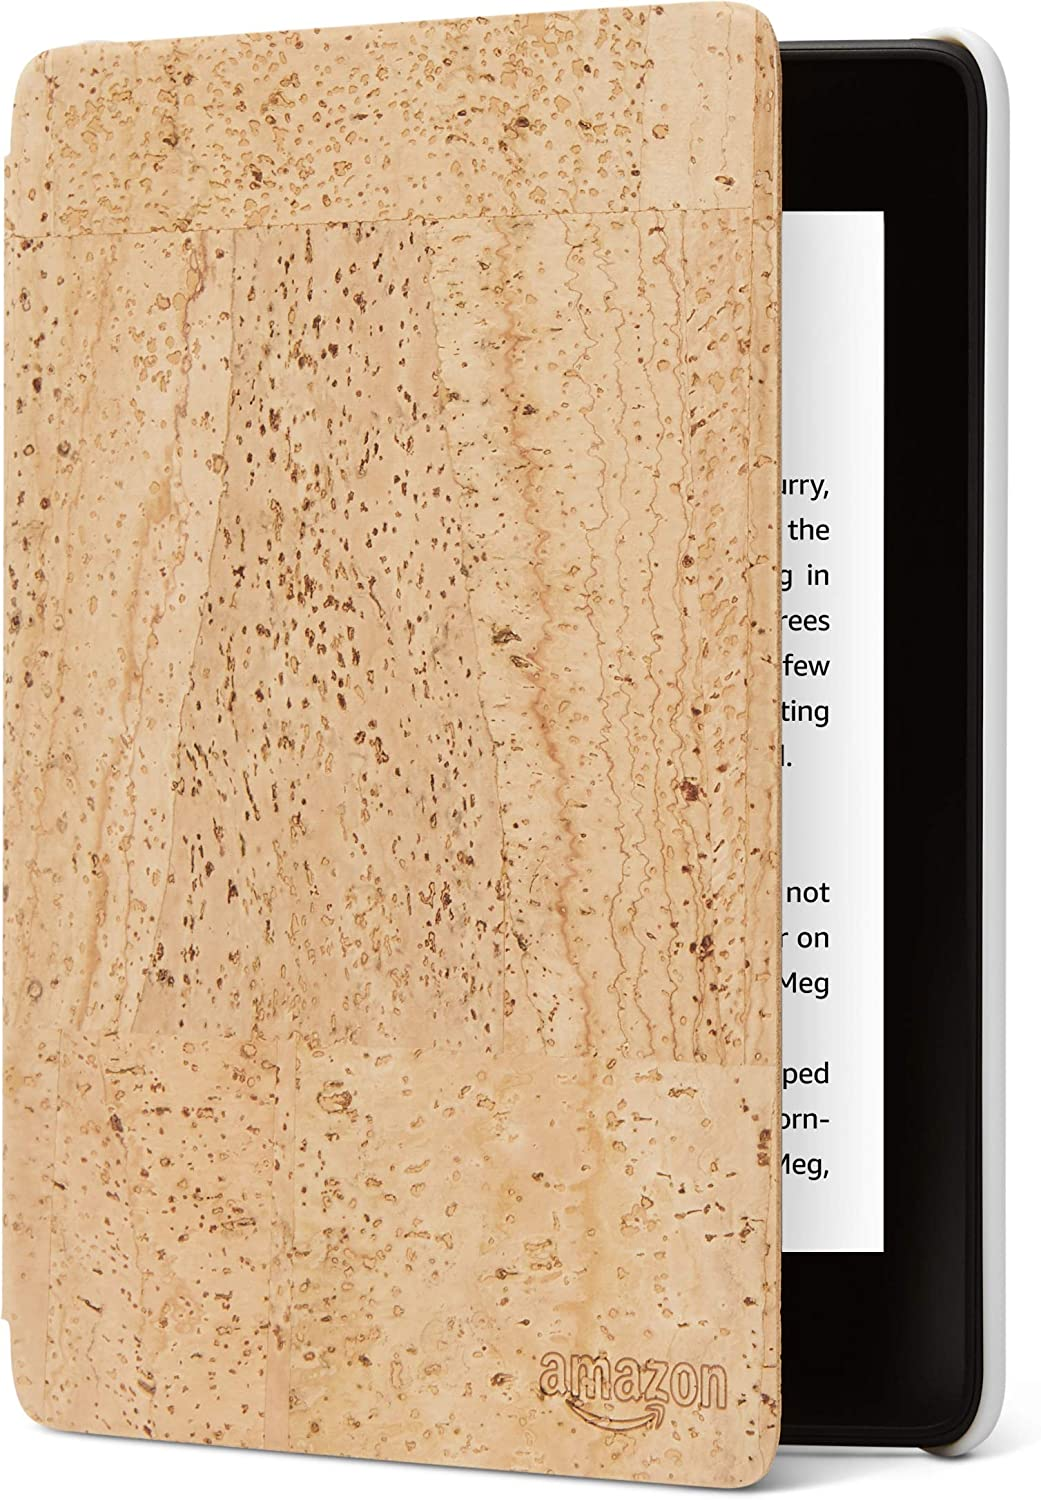 kindle paperwhite case amazon cork case